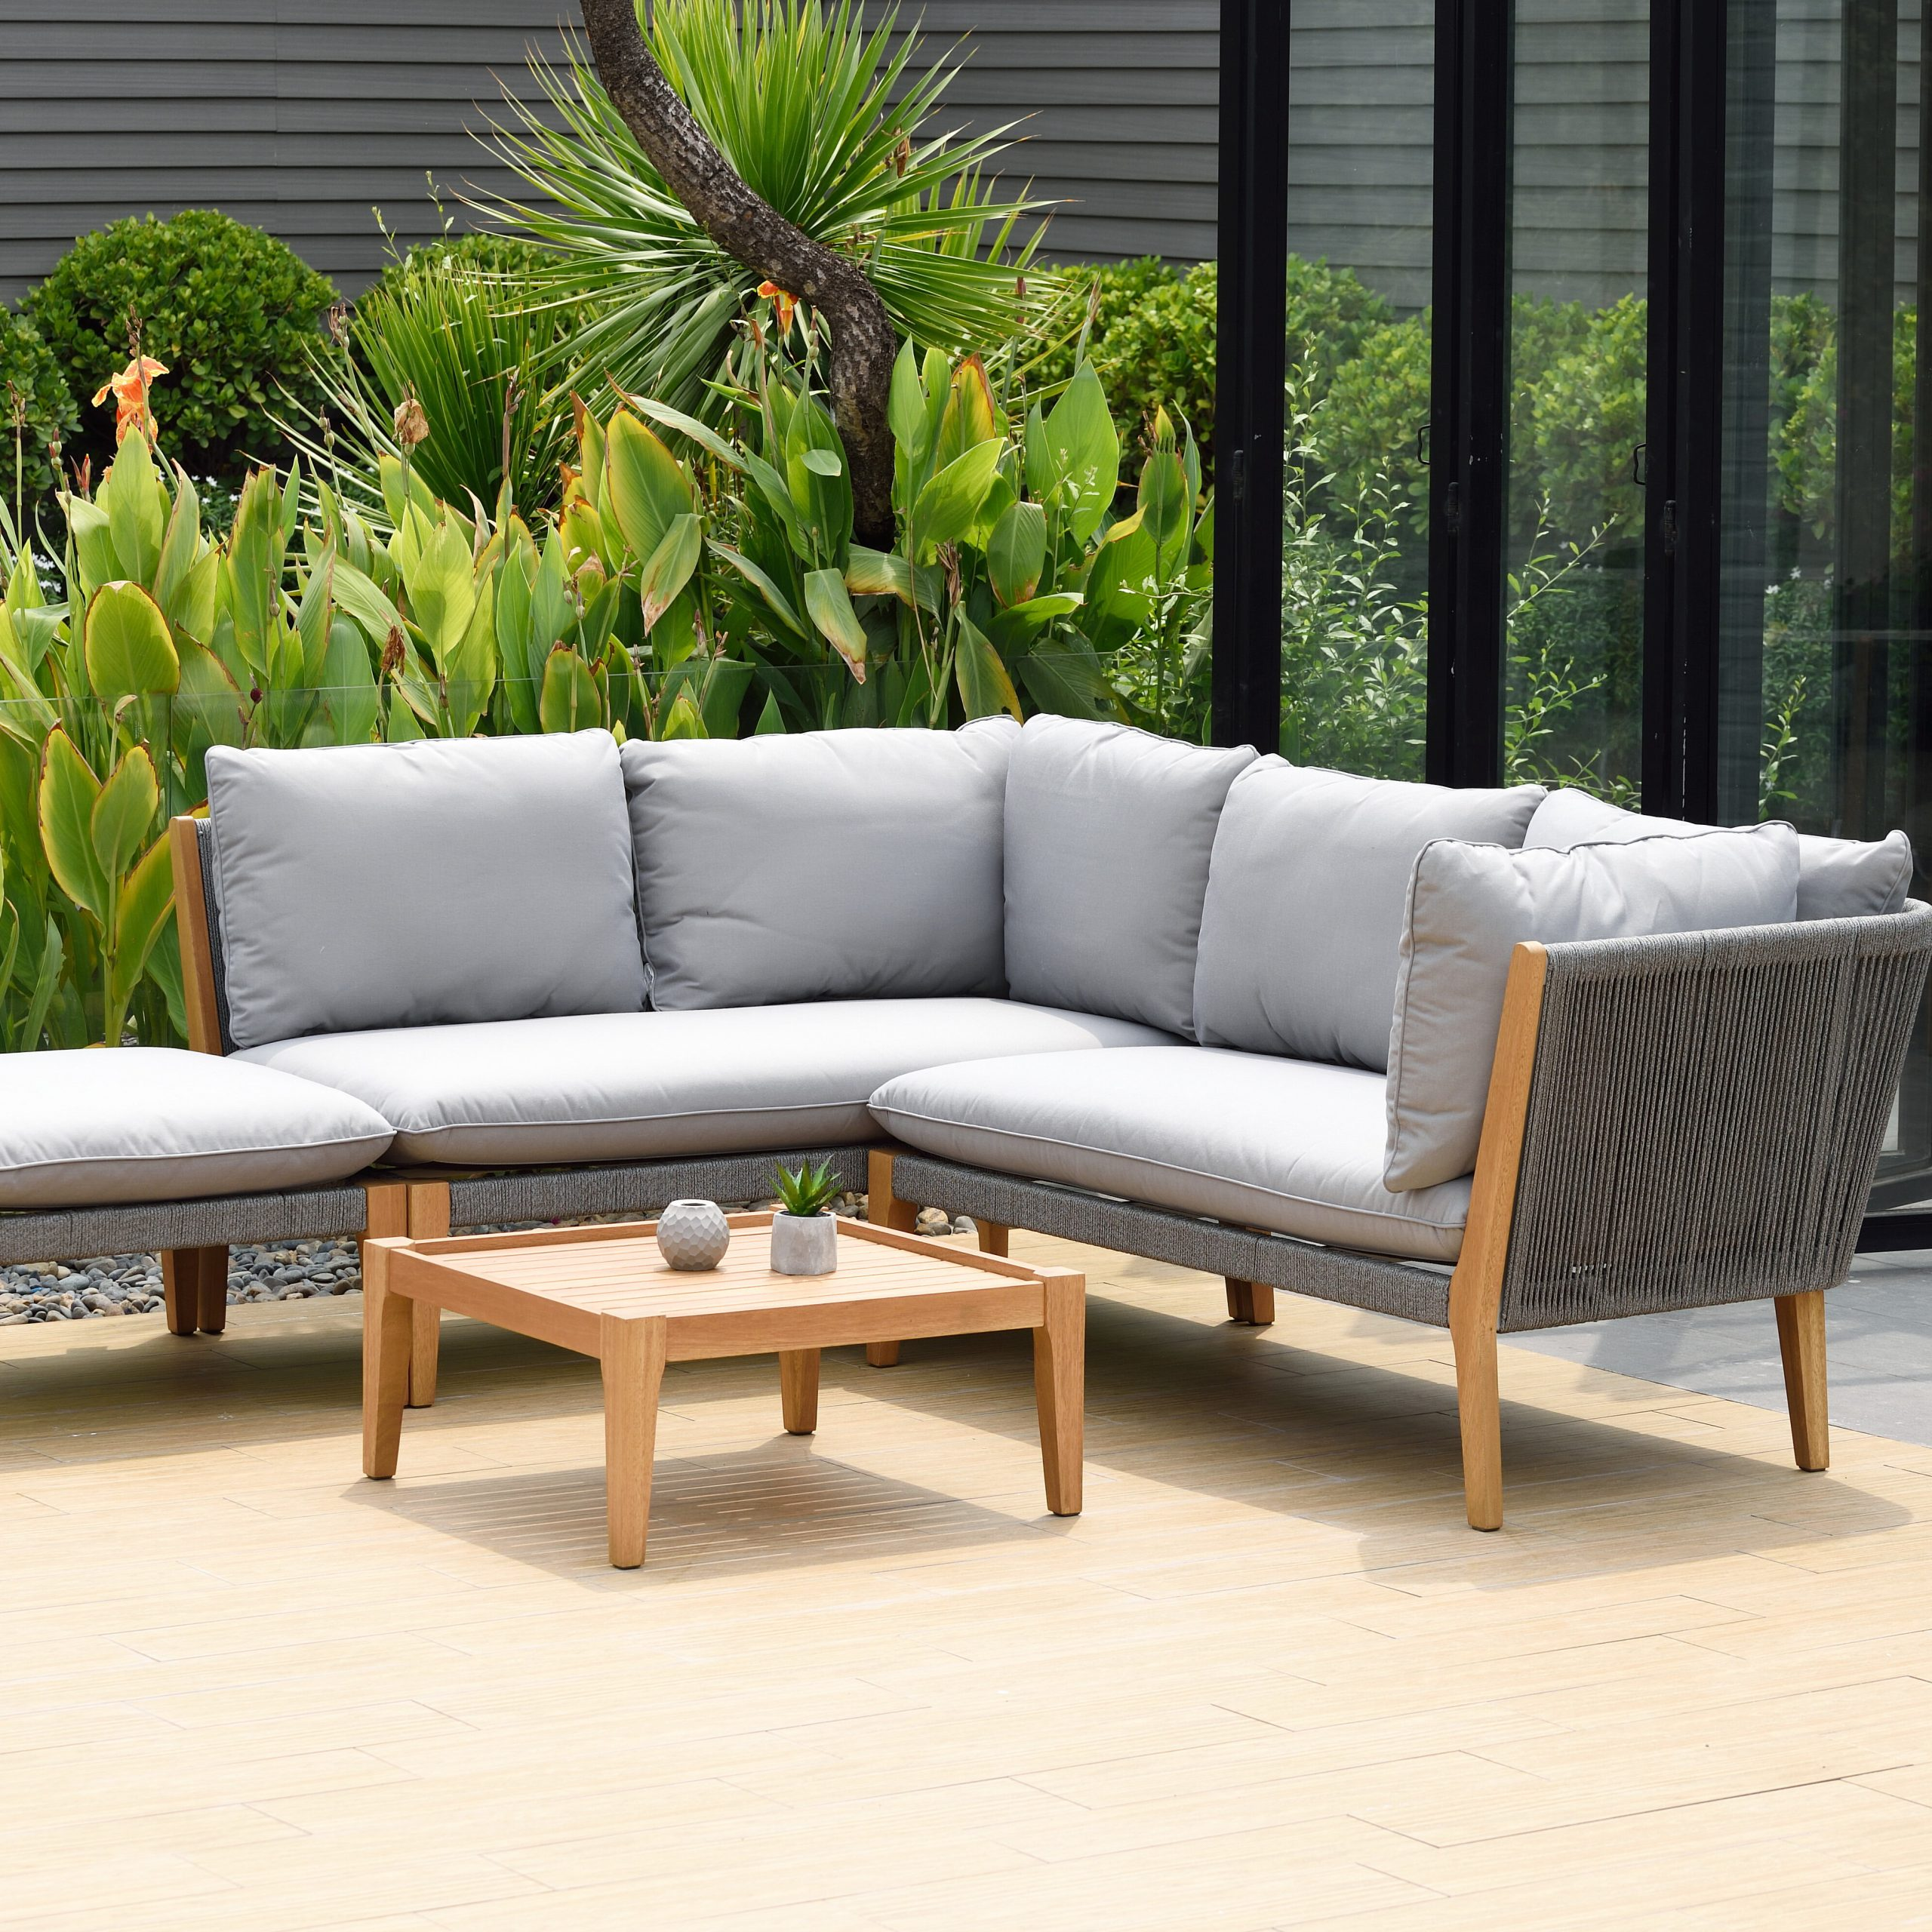 Olinda 3 Piece Sectionals Seating Group With Cushions Inside 2019 Olinda 3 Piece Sectional Seating Group With Cushions (View 17 of 25)